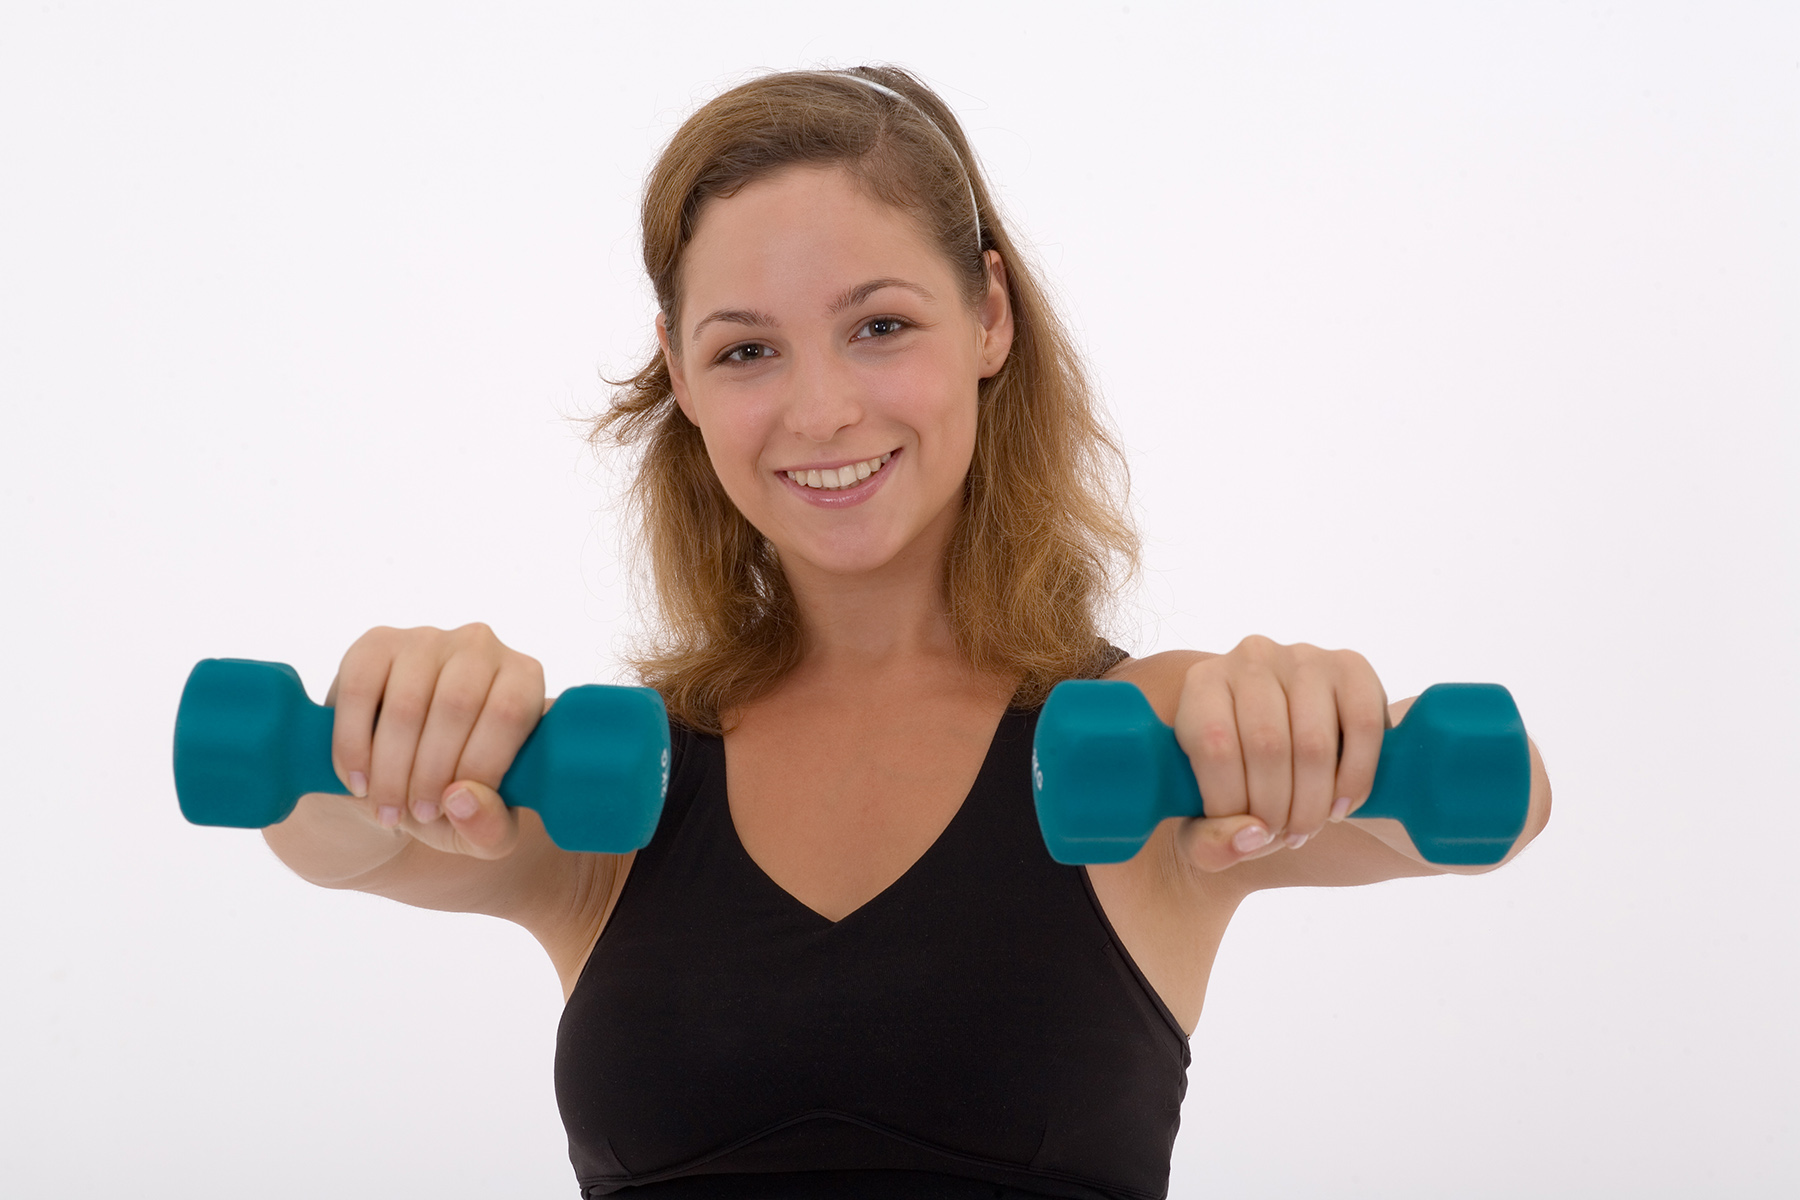 Weights.woman.teal